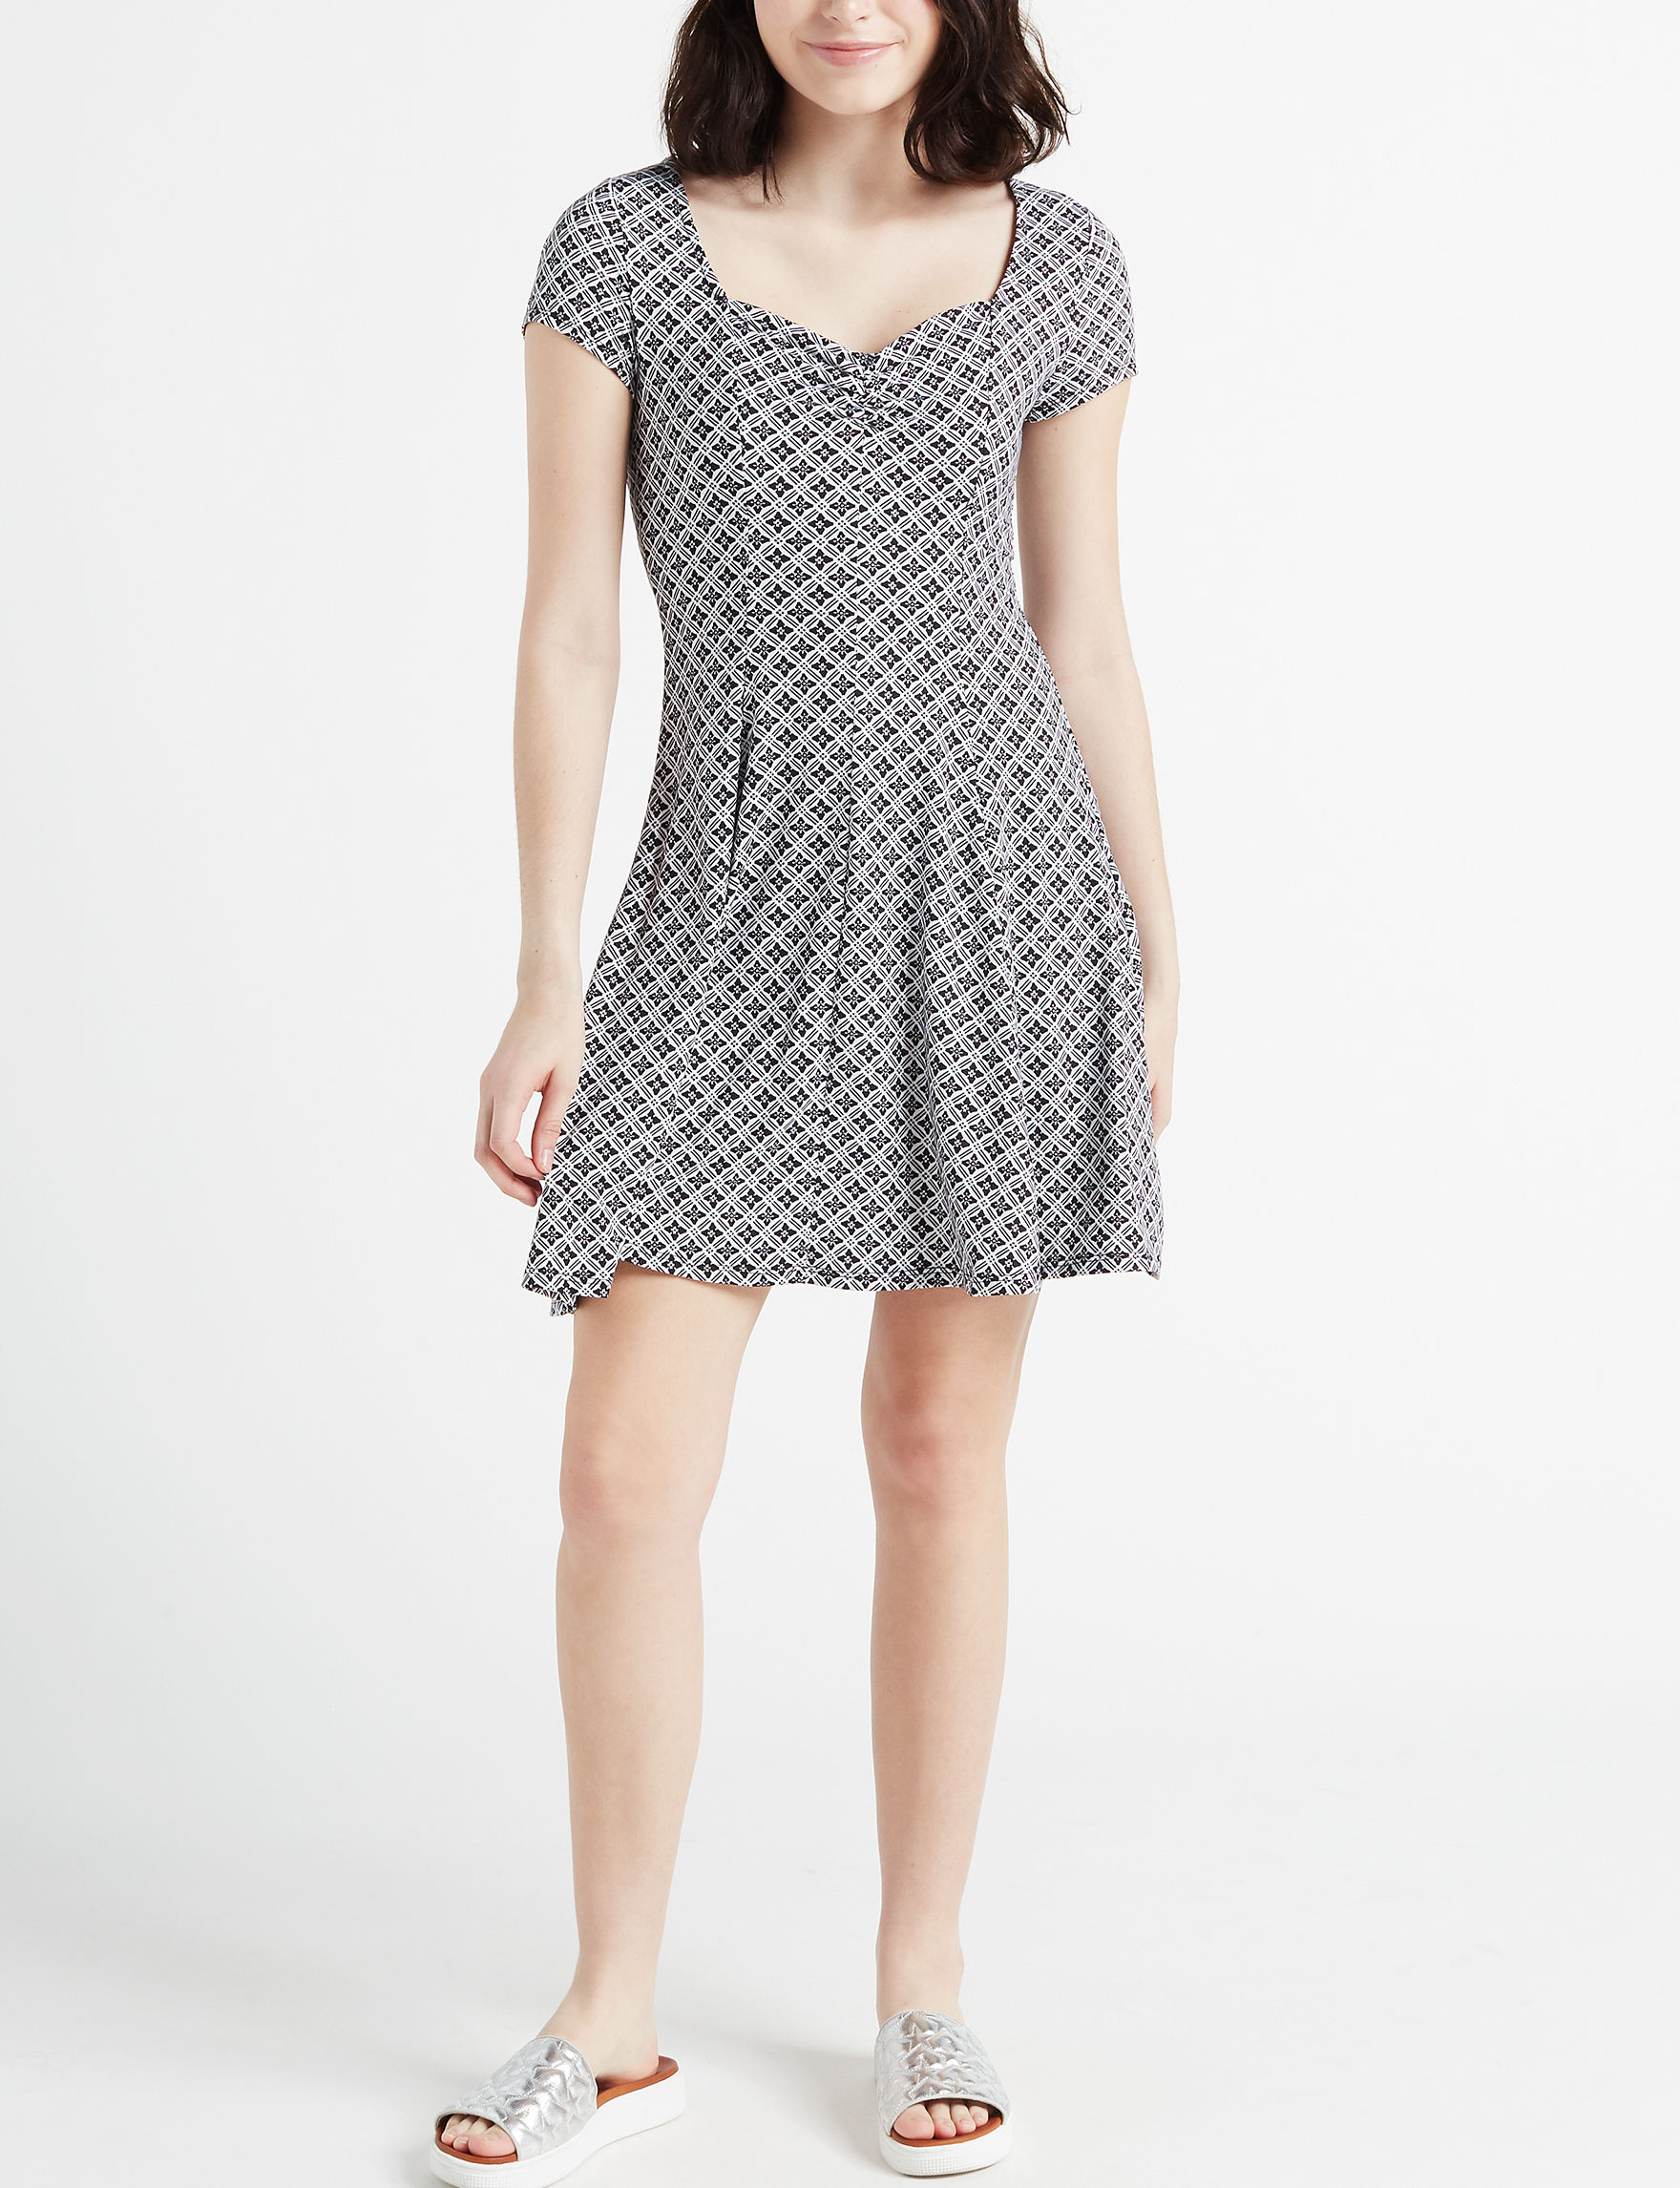 BeBop Black / White Everyday & Casual Shift Dresses